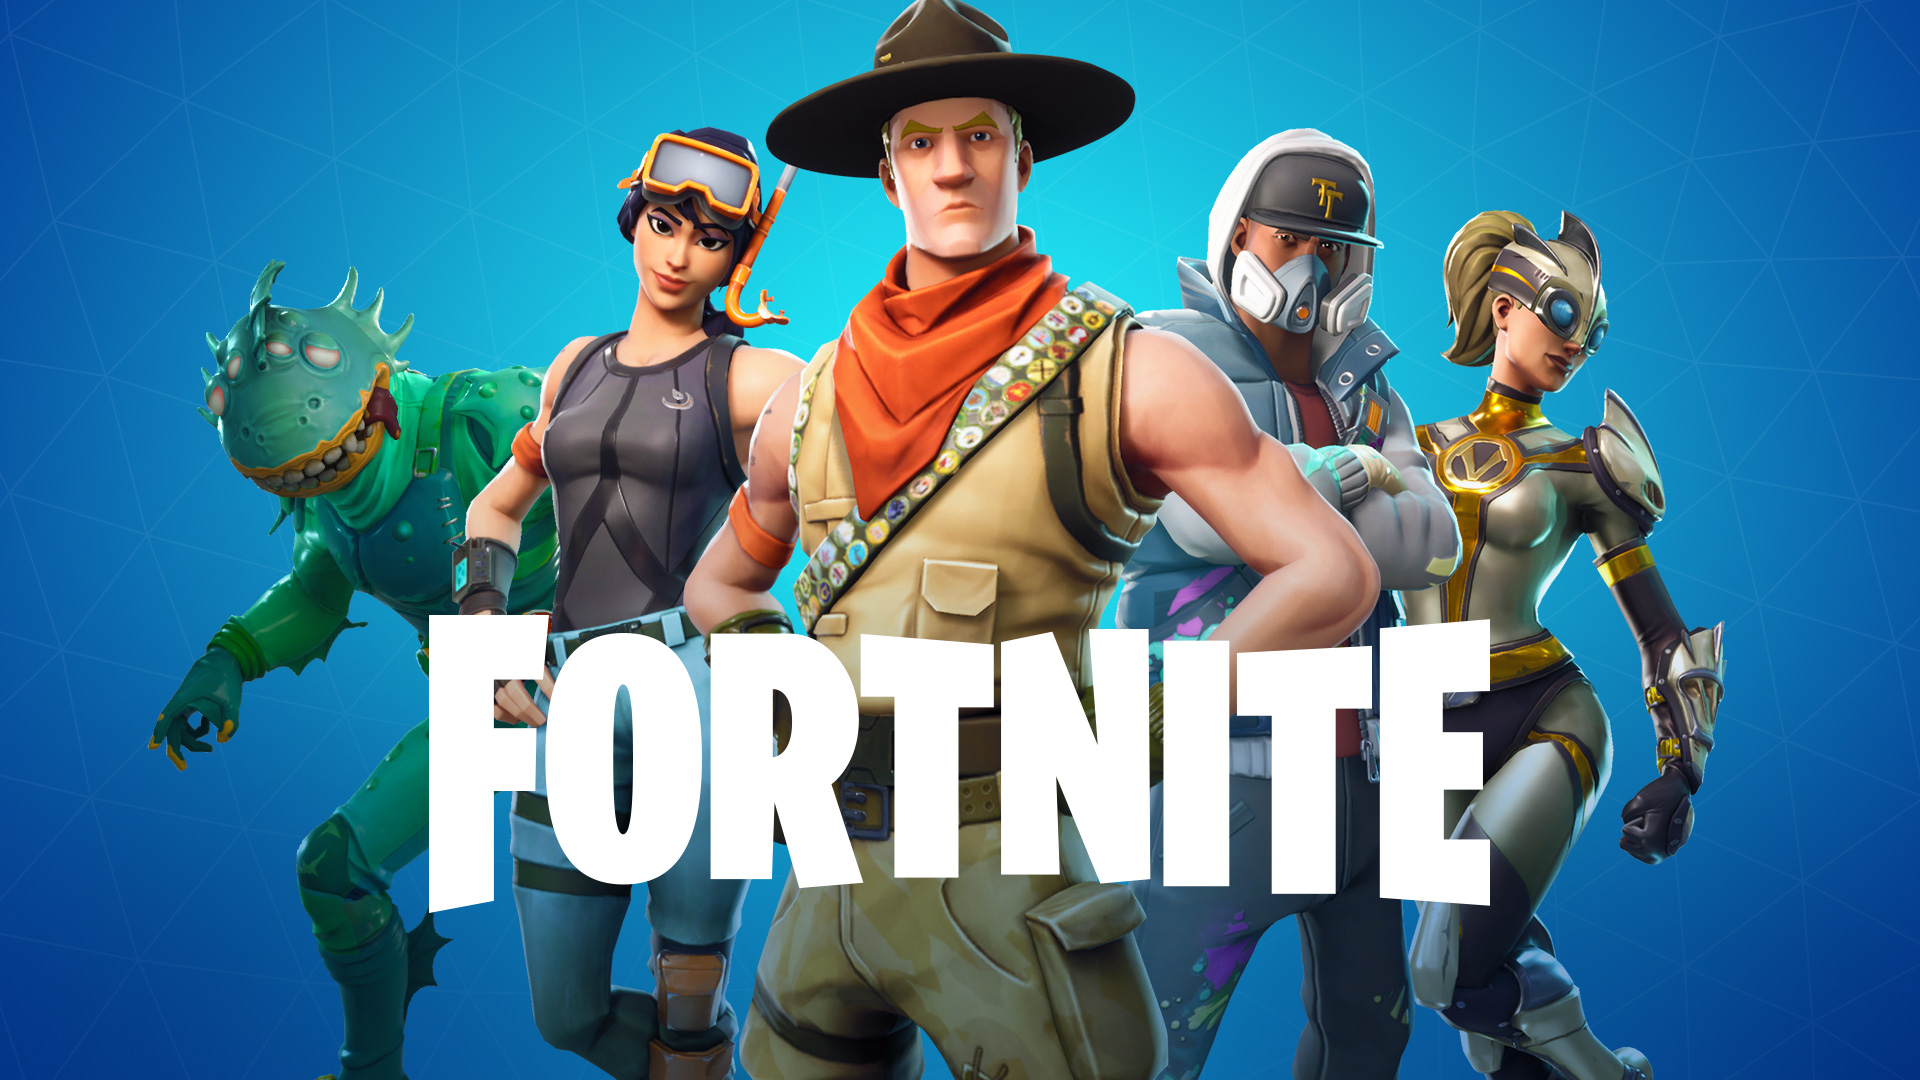 Fortnite latest update bringing wave of new changes including a returning weapon